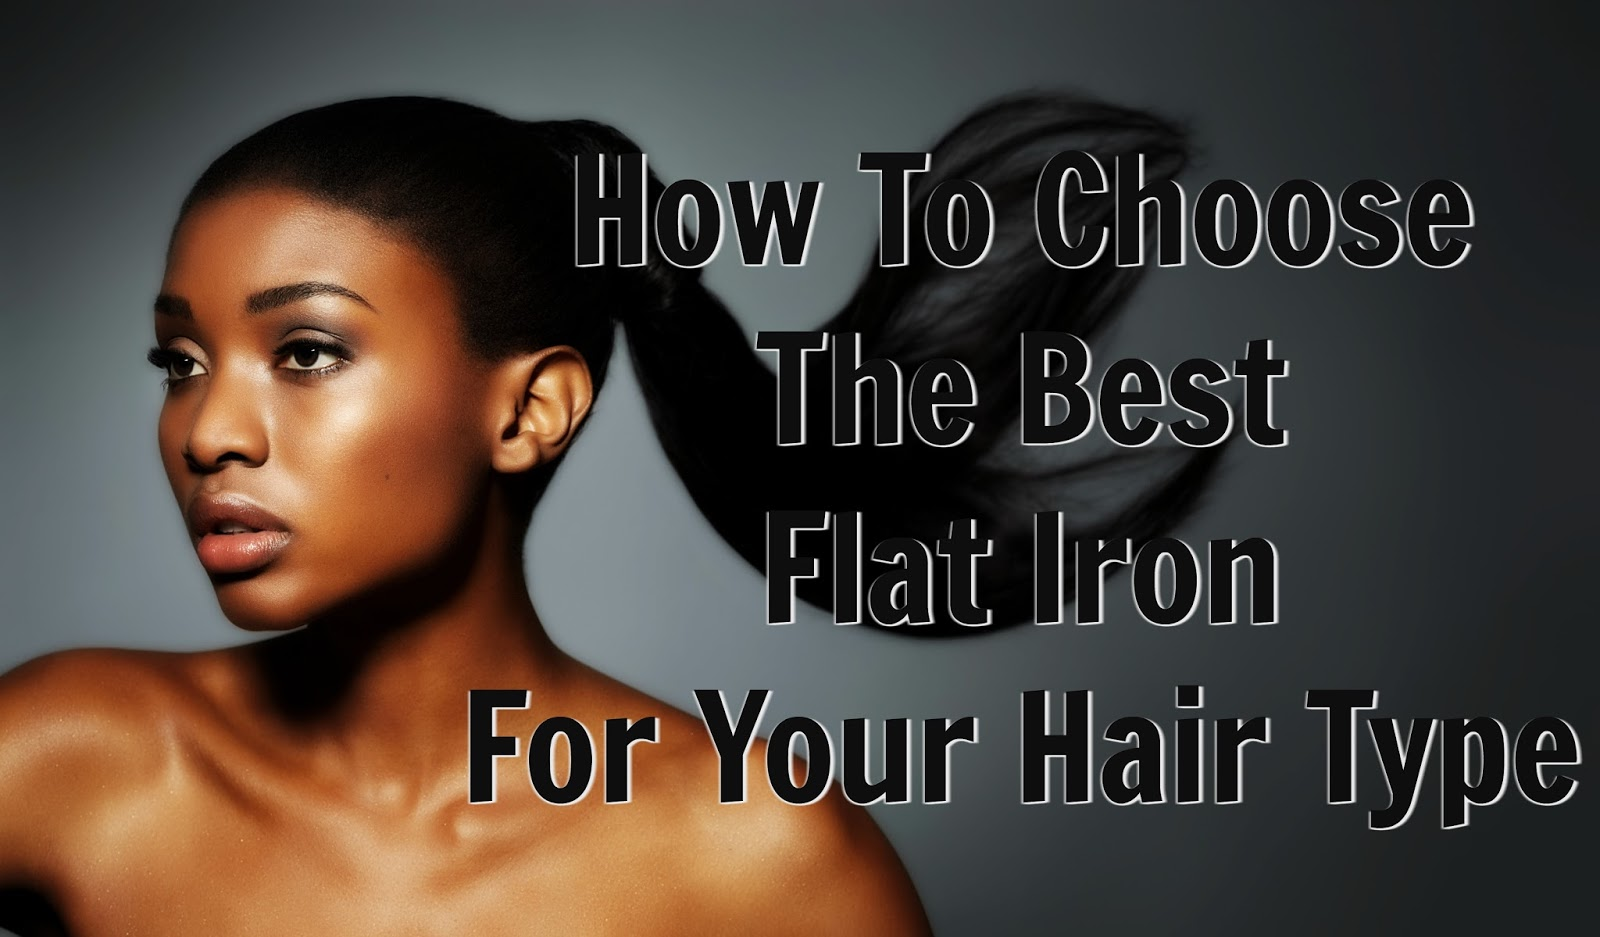 You need to know which flat iron to buy for your hair type